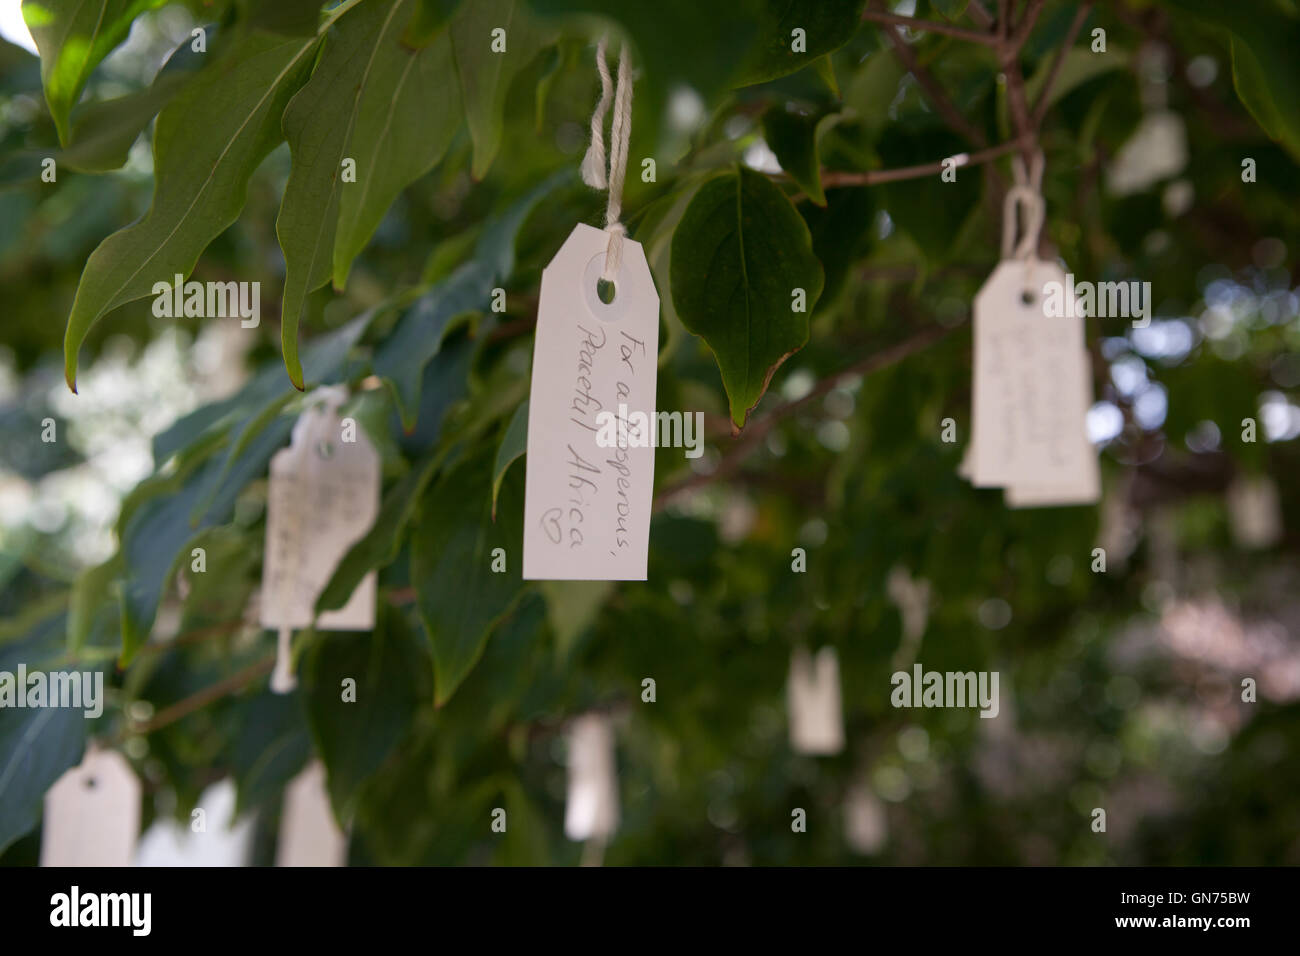 Tags with messages on Yoko Ono wish tree - USA - Stock Image